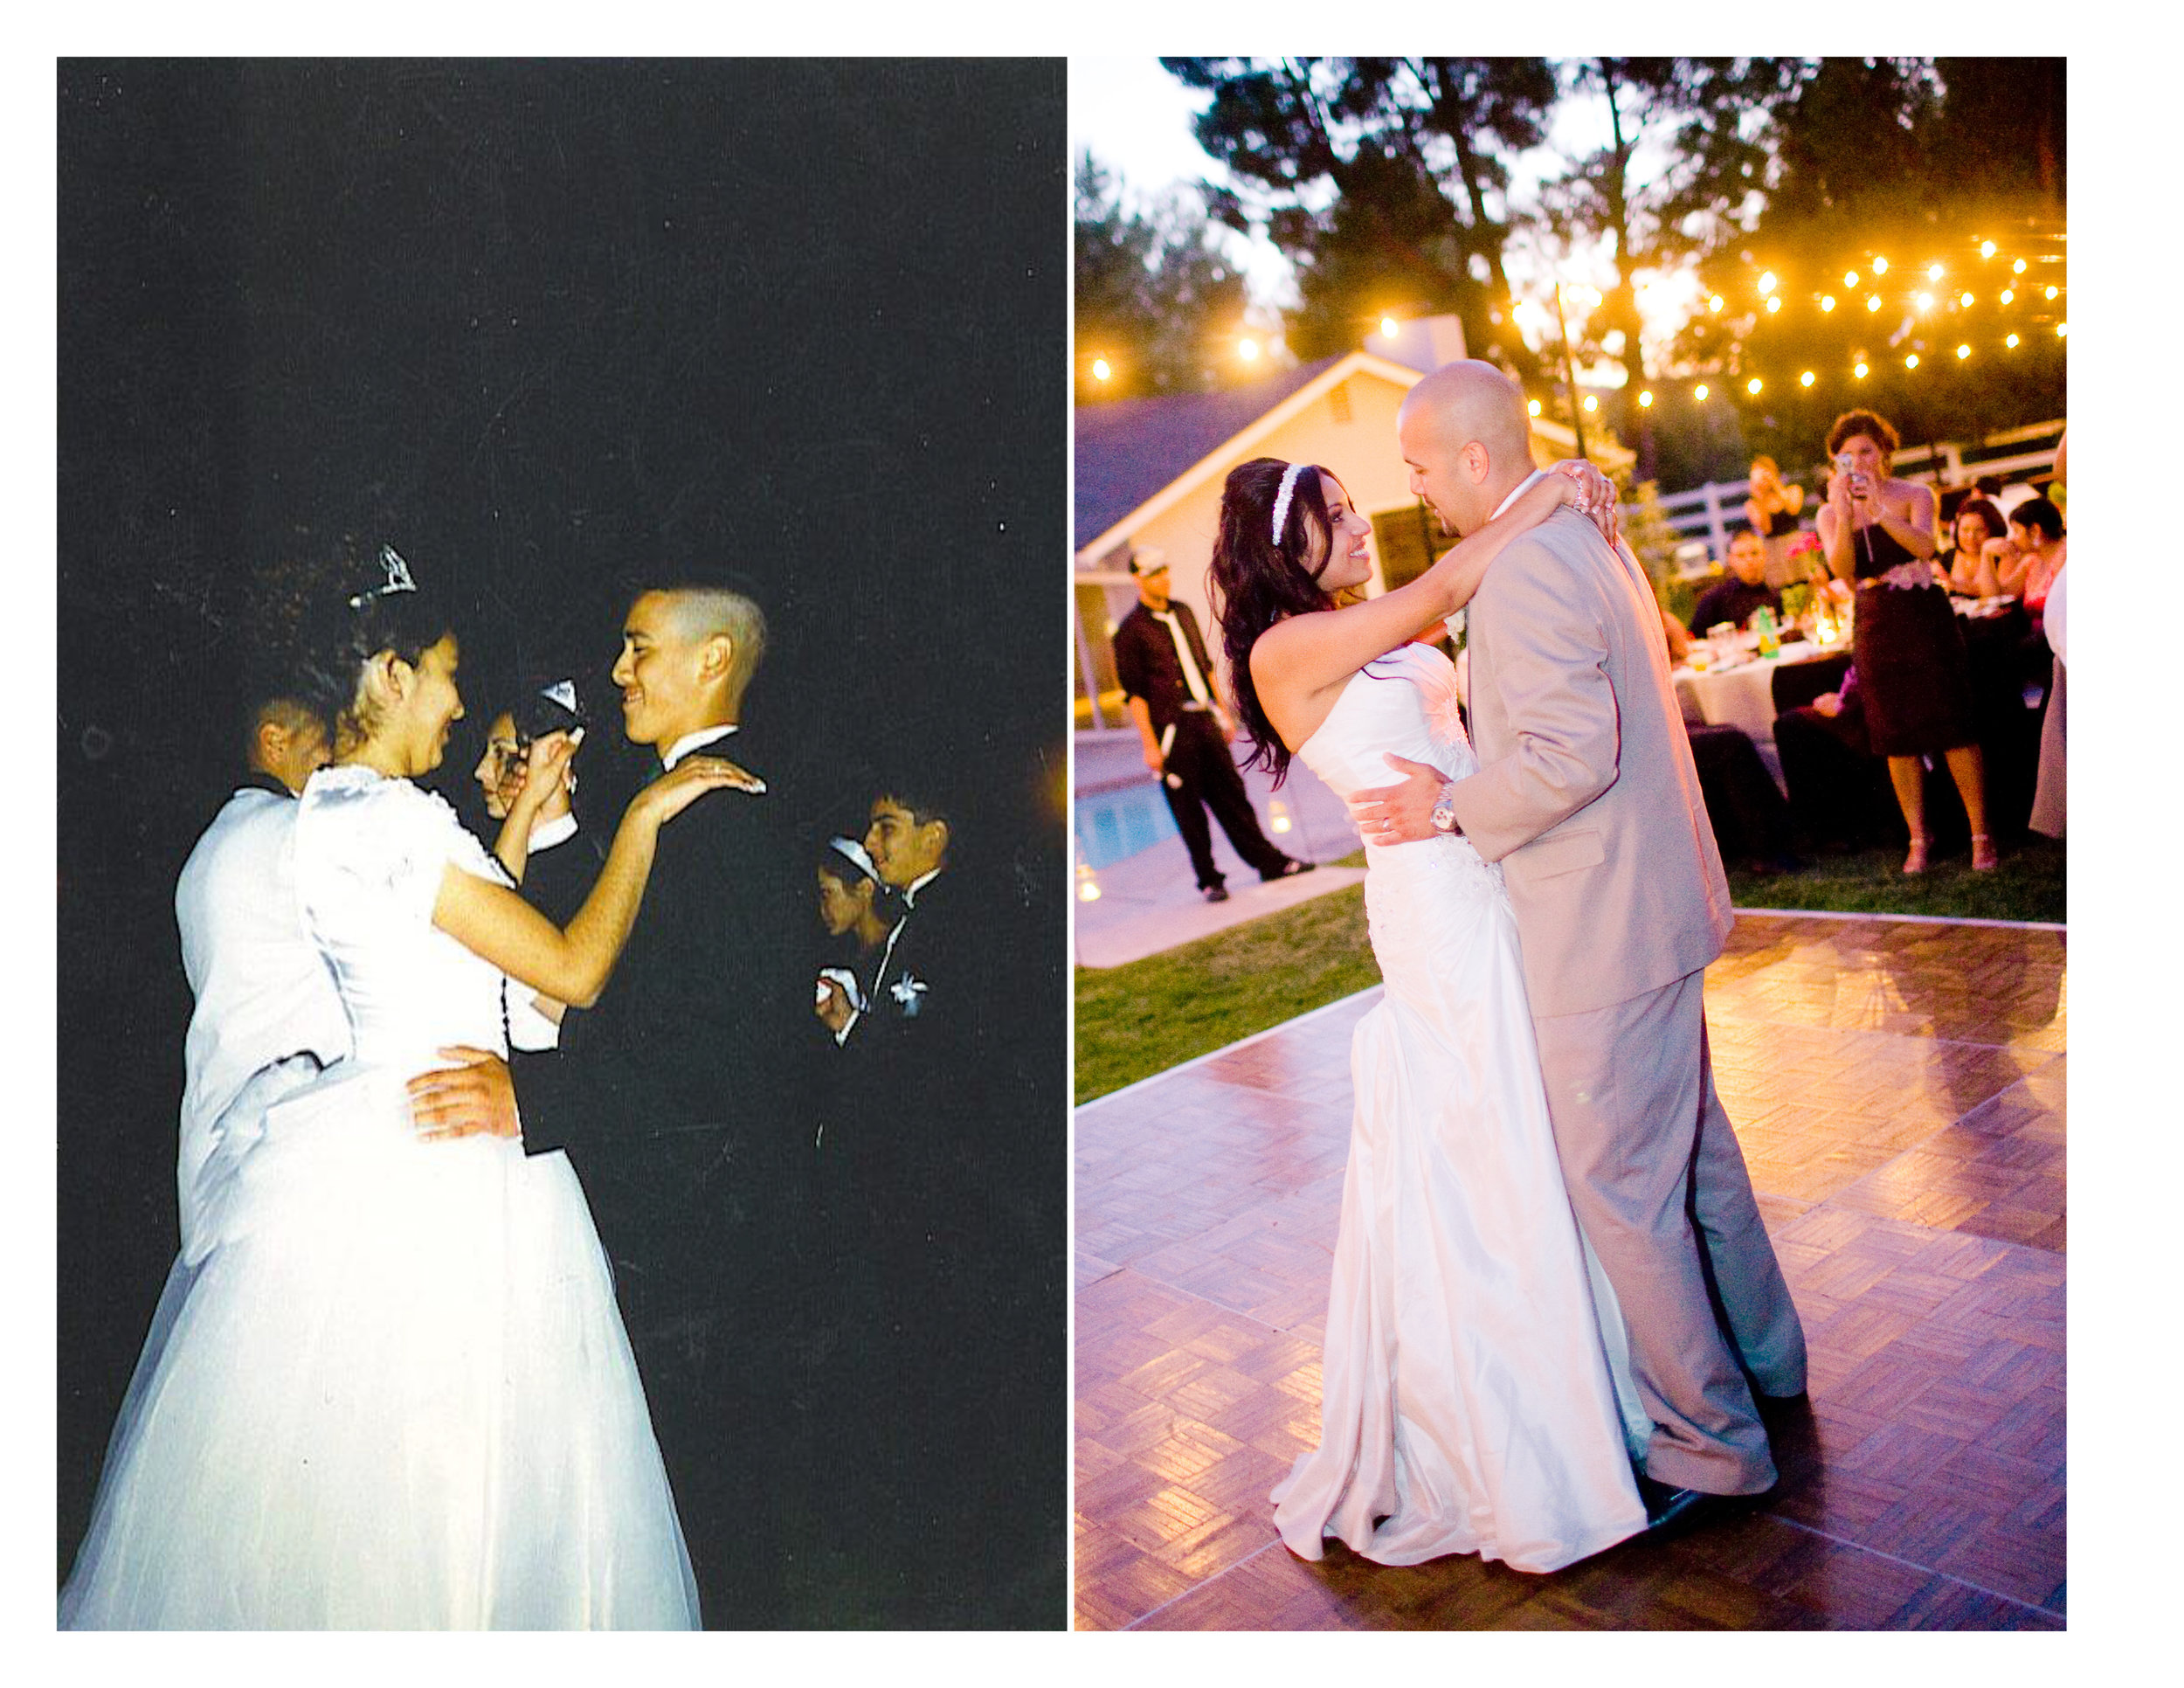 On the left we were 15 dancing at my Quinceanera (15th birthday party) and on the right we were dancing on our wedding day.